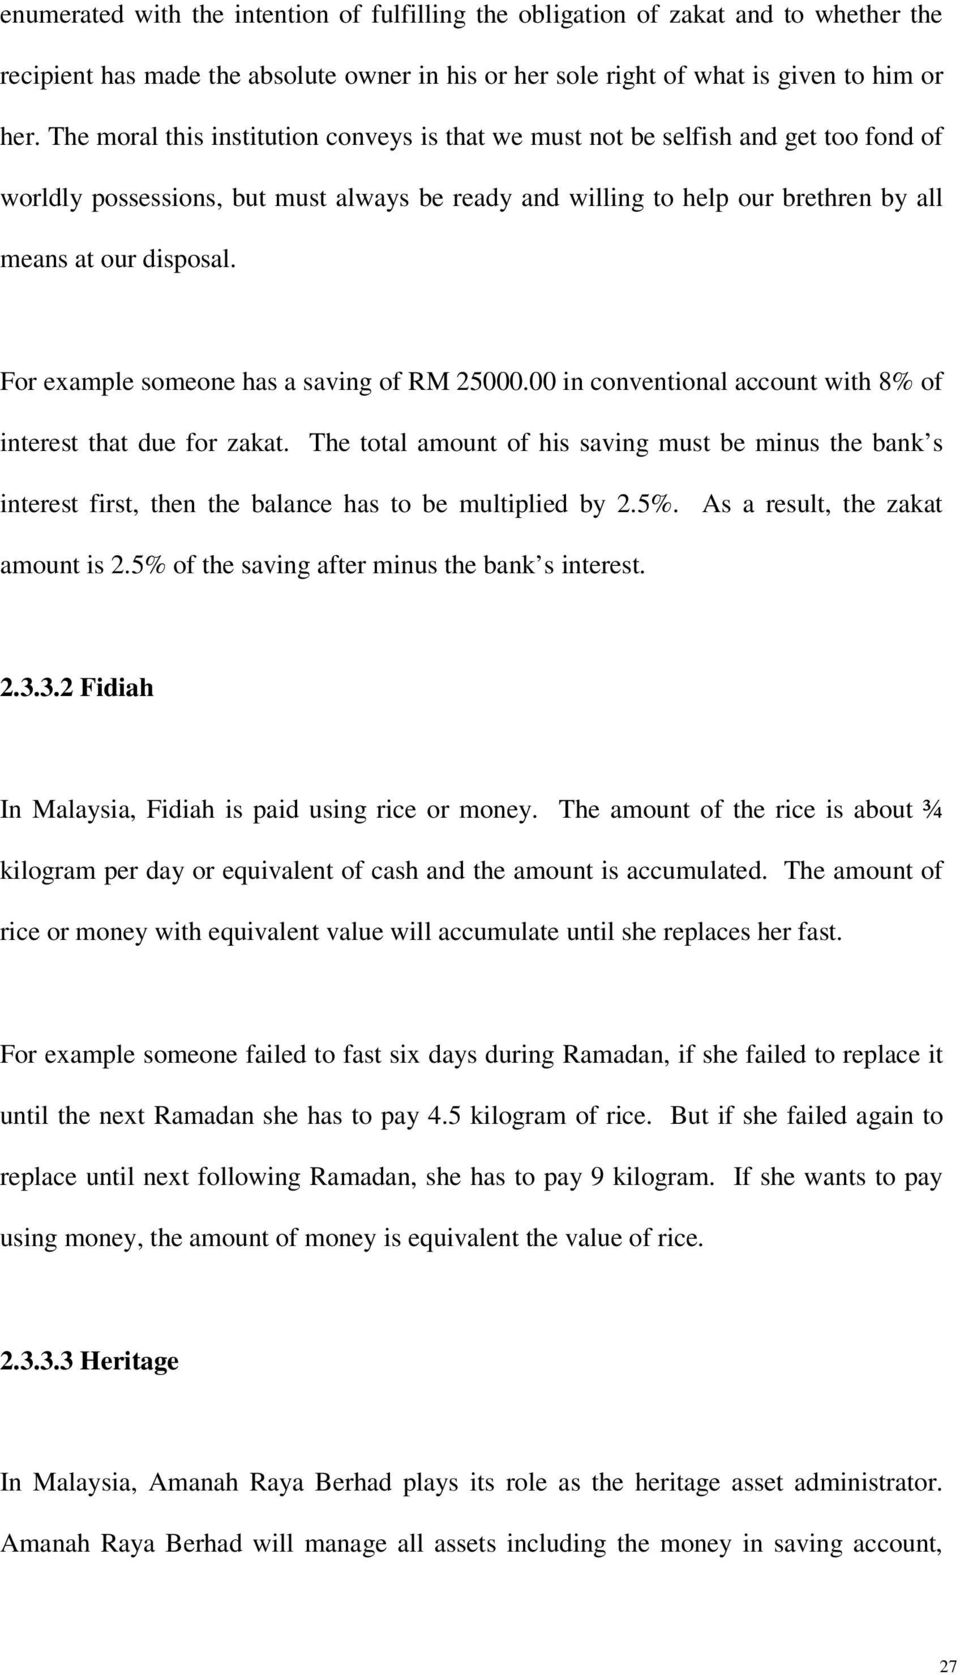 For example someone has a saving of RM 25000.00 in conventional account with 8% of interest that due for zakat.